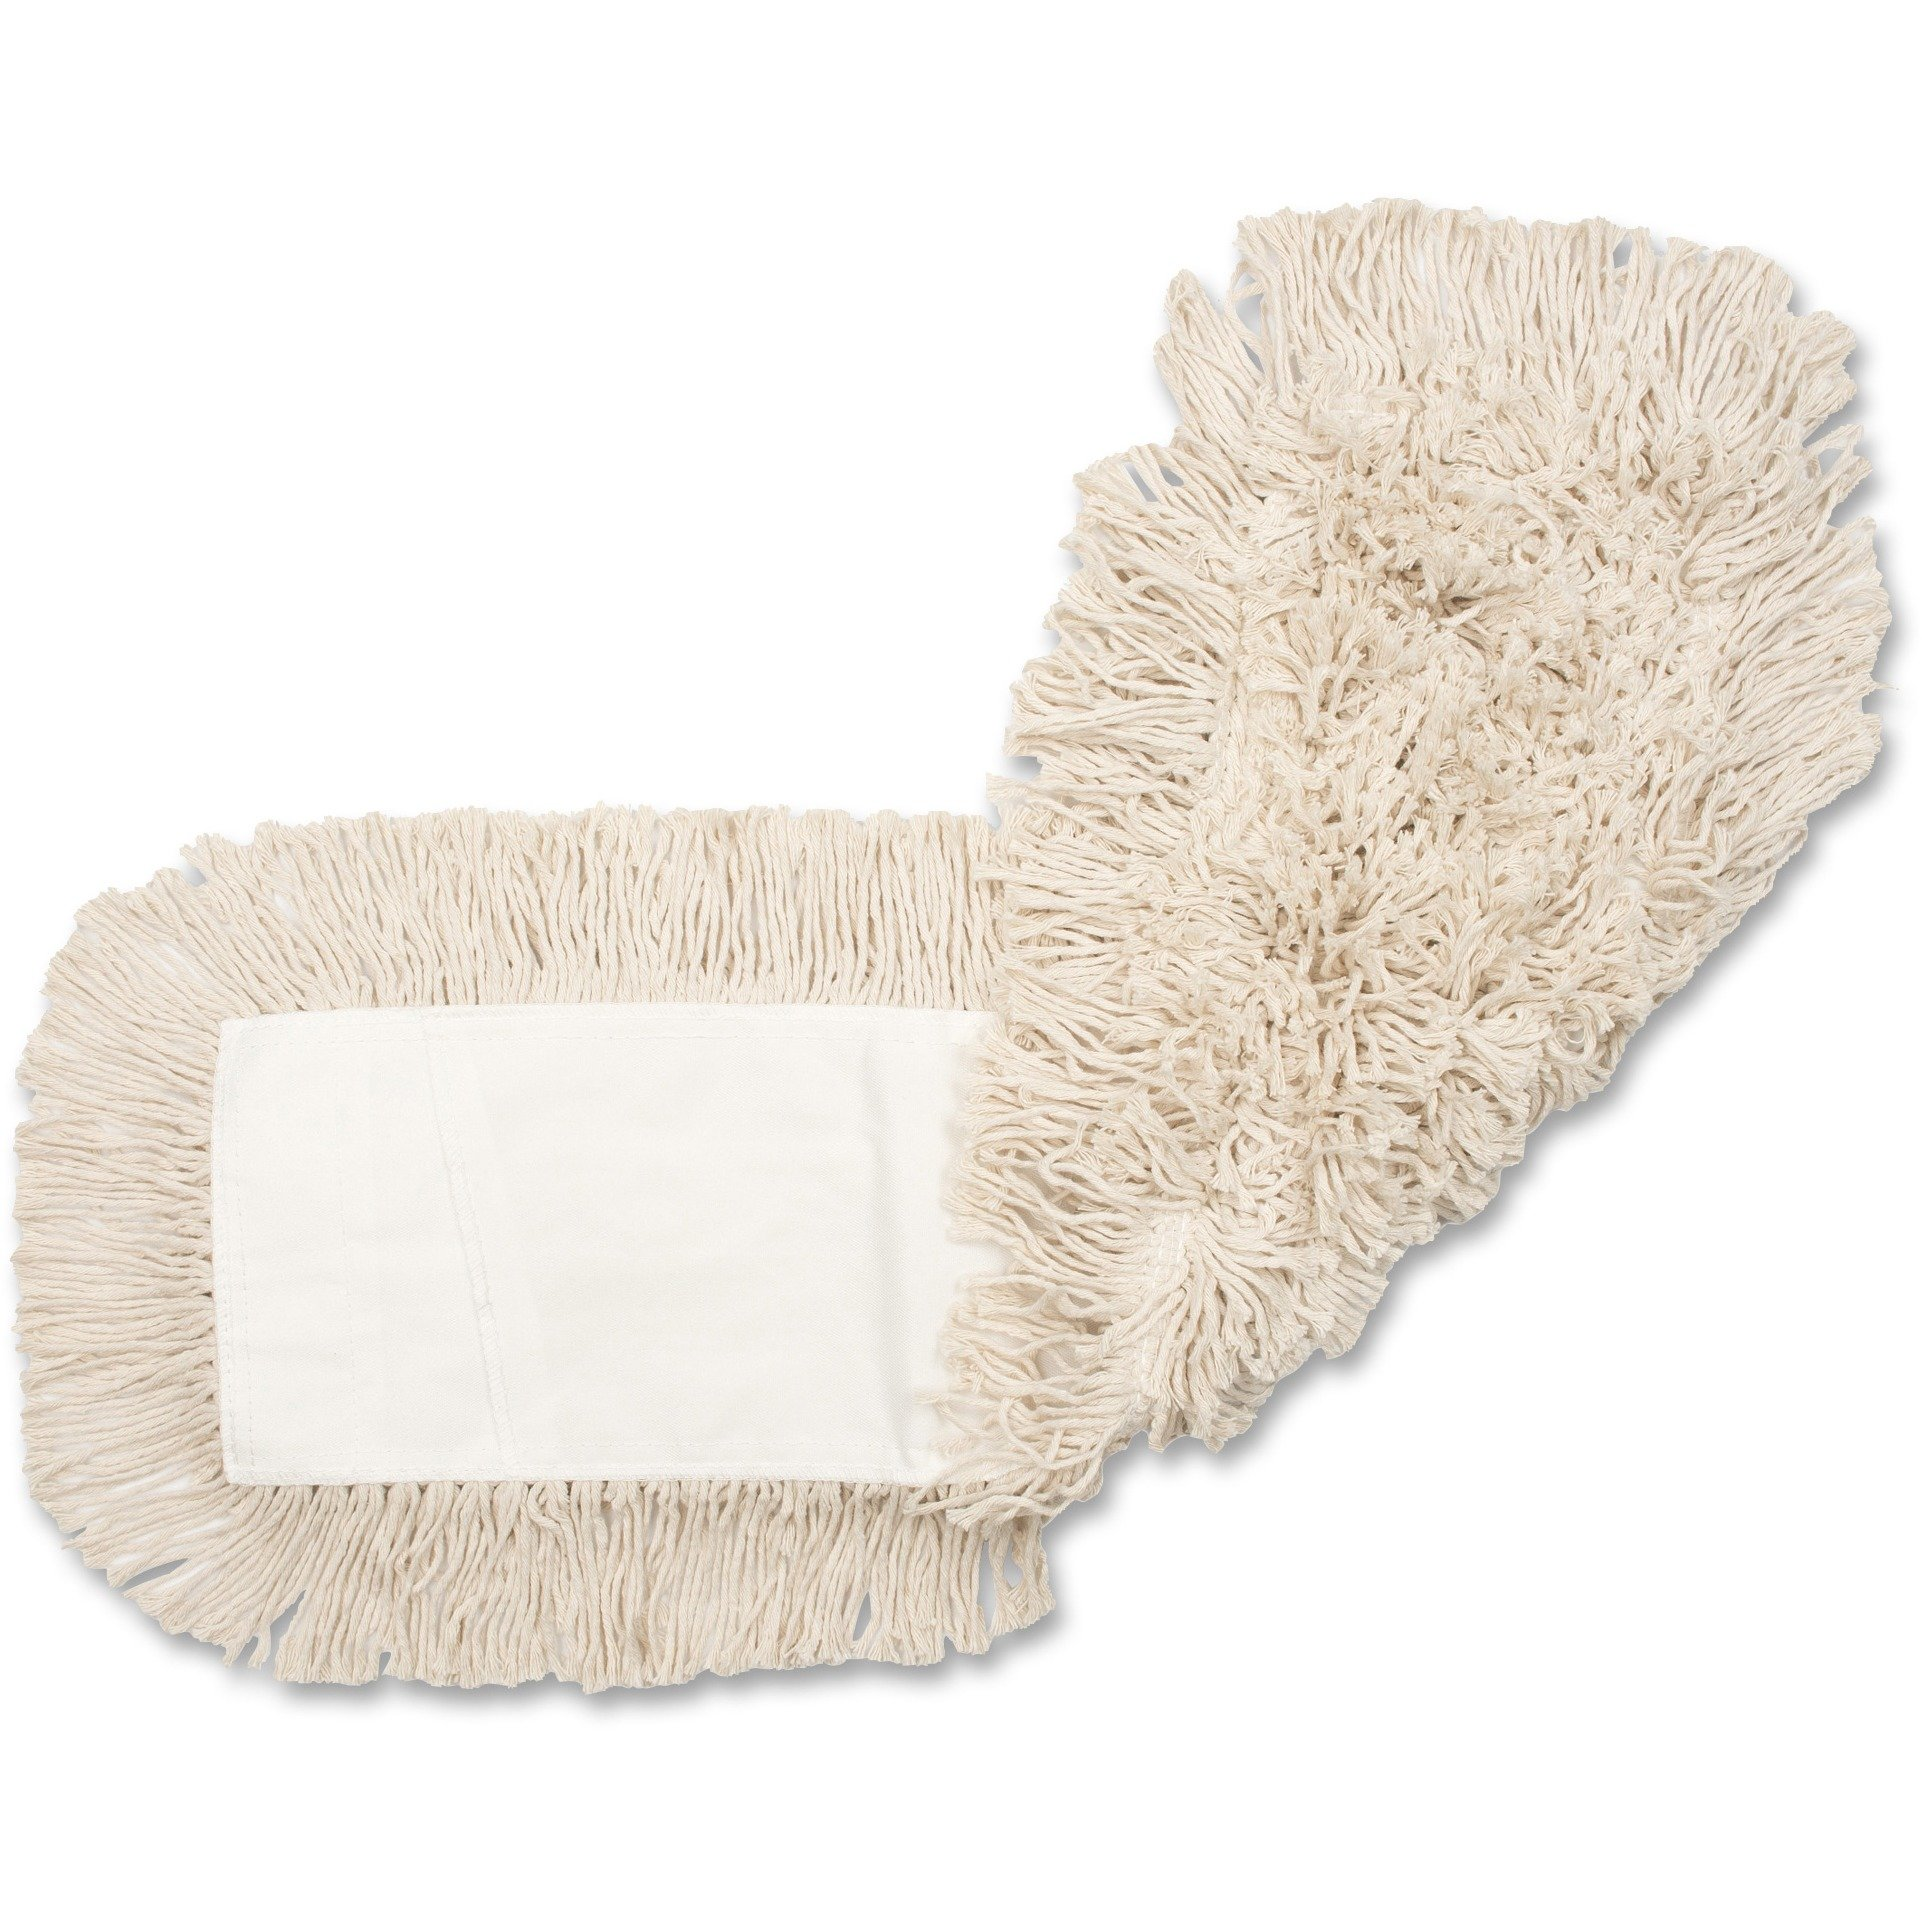 Genuine Joe GJO48503CT Disposable Cotton Dustmop Refill, 48''X5'', 12Ea/Ct, Natural (Pack of 12) by Genuine Joe